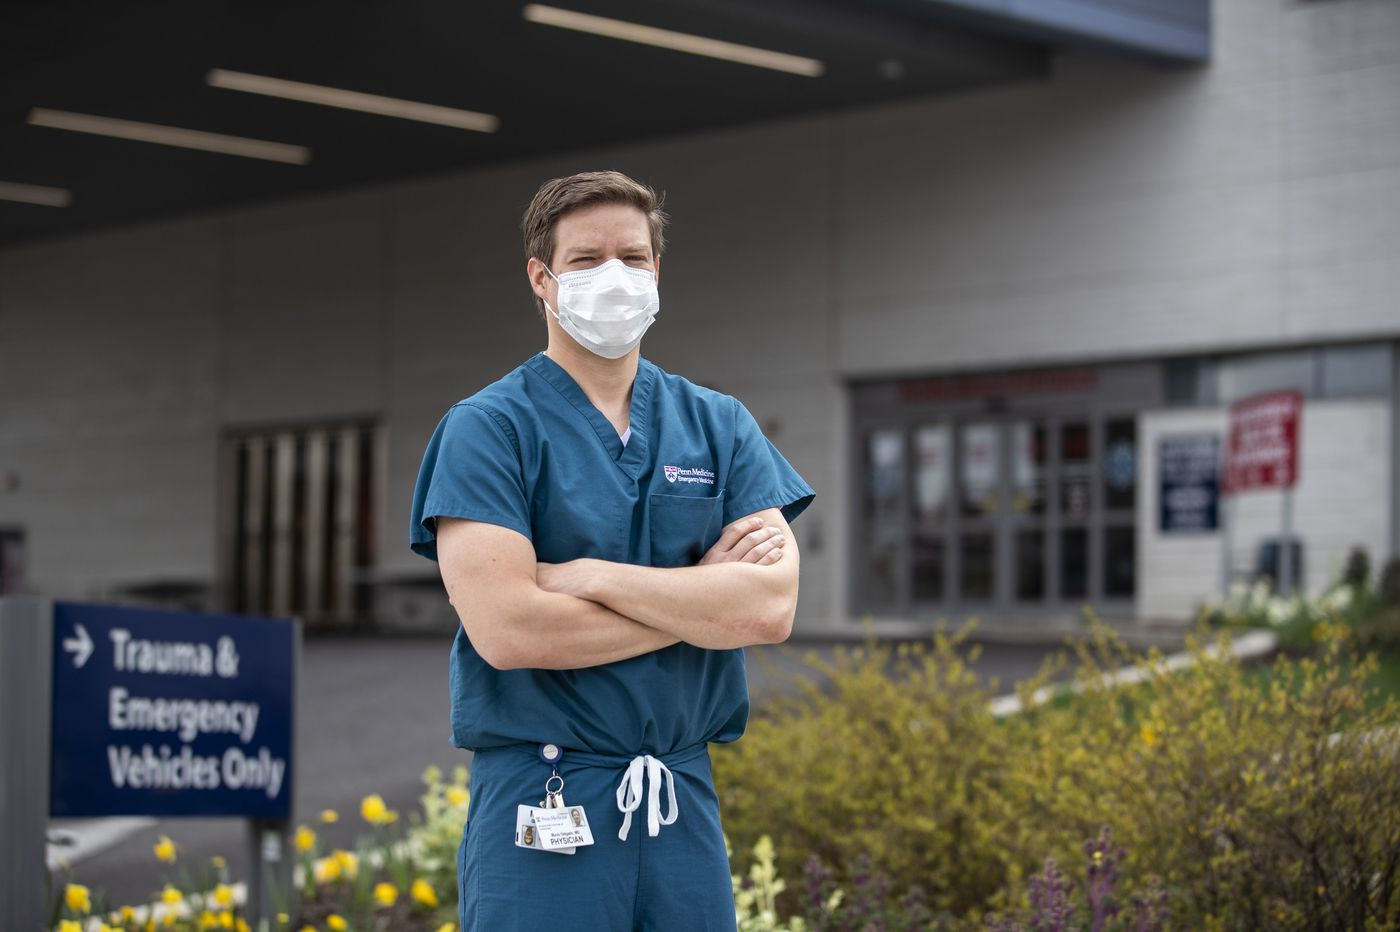 The coronavirus pandemic is playing out behind hospital walls. On social media, these doctors and nurses give a peek into the front lines.